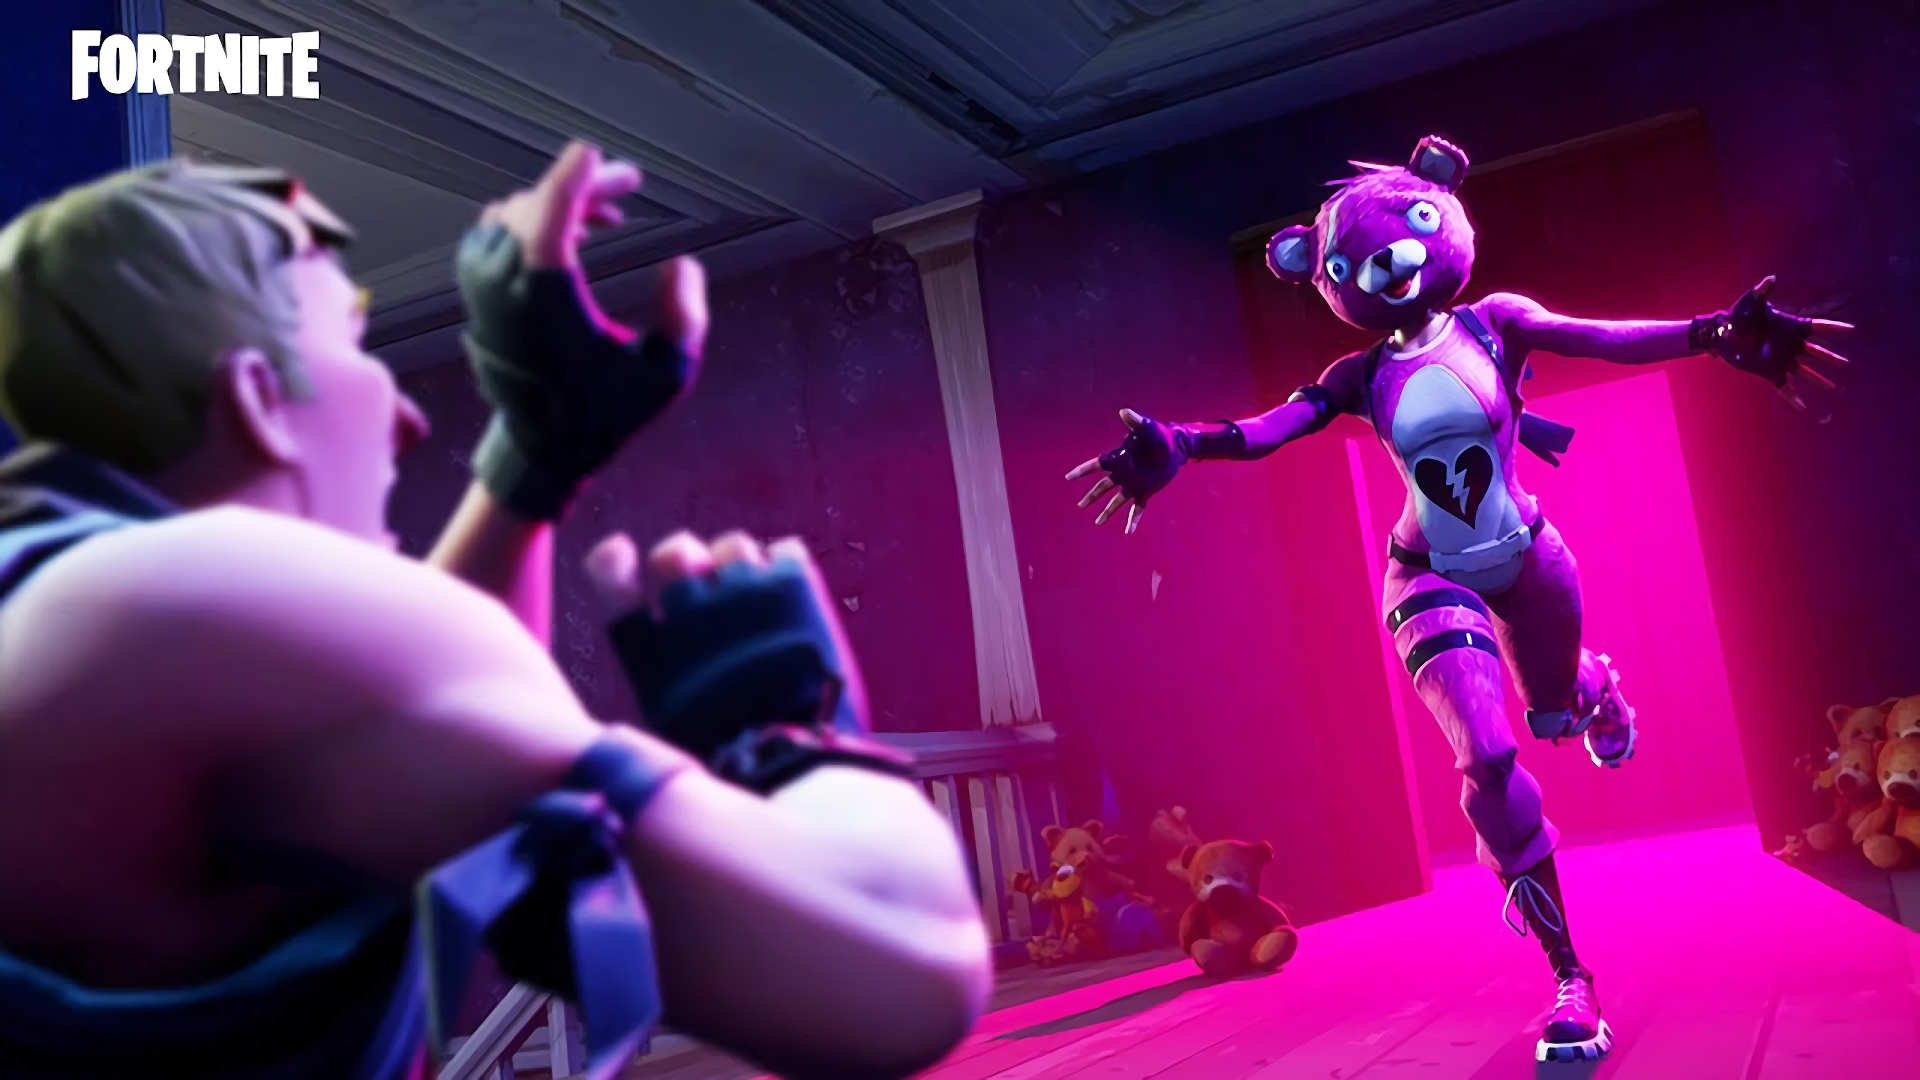 fortnite pink bear skin wallpaper 63893